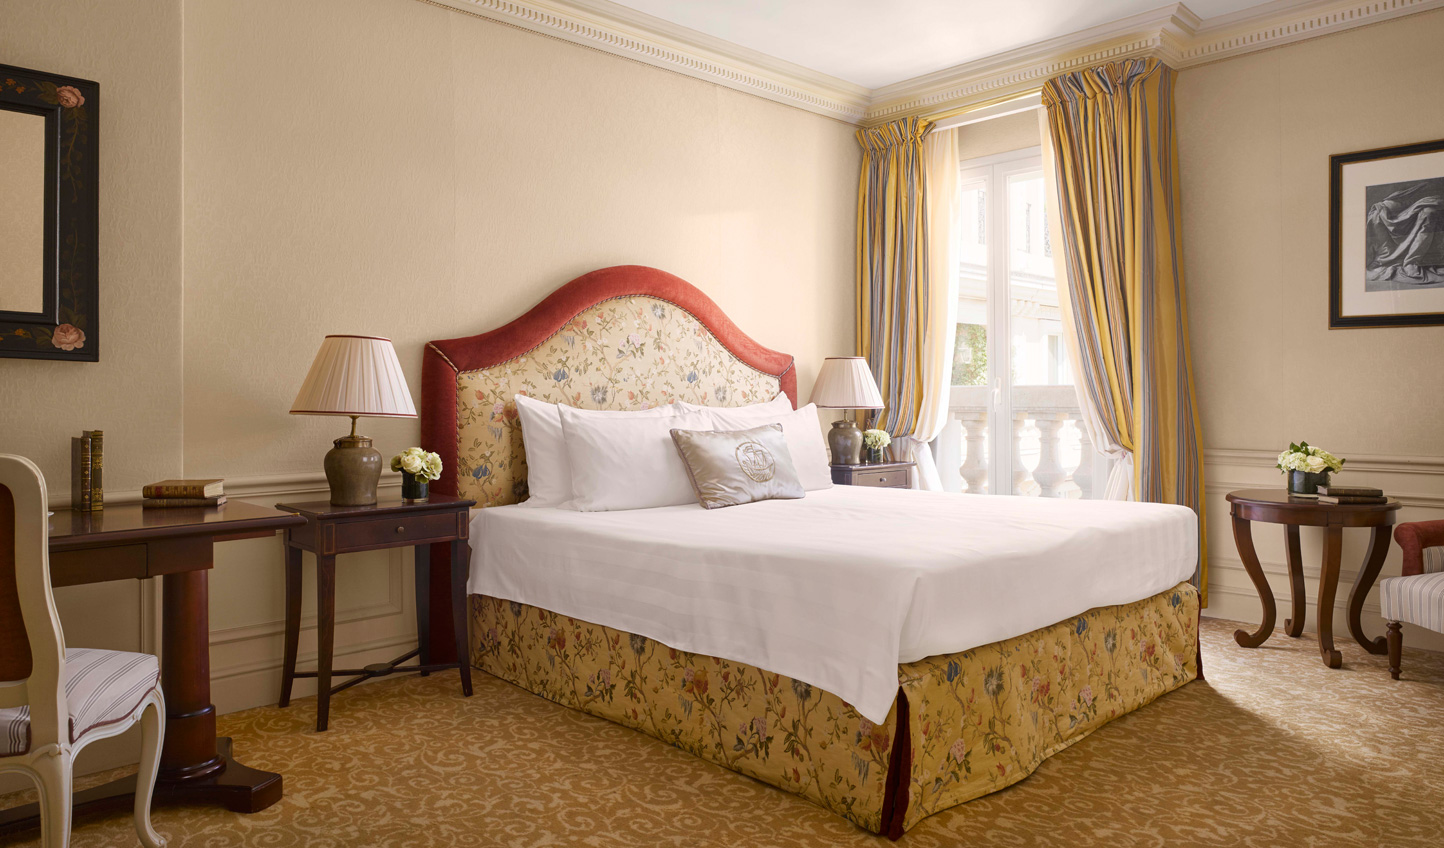 Traditional elegance in the guest rooms